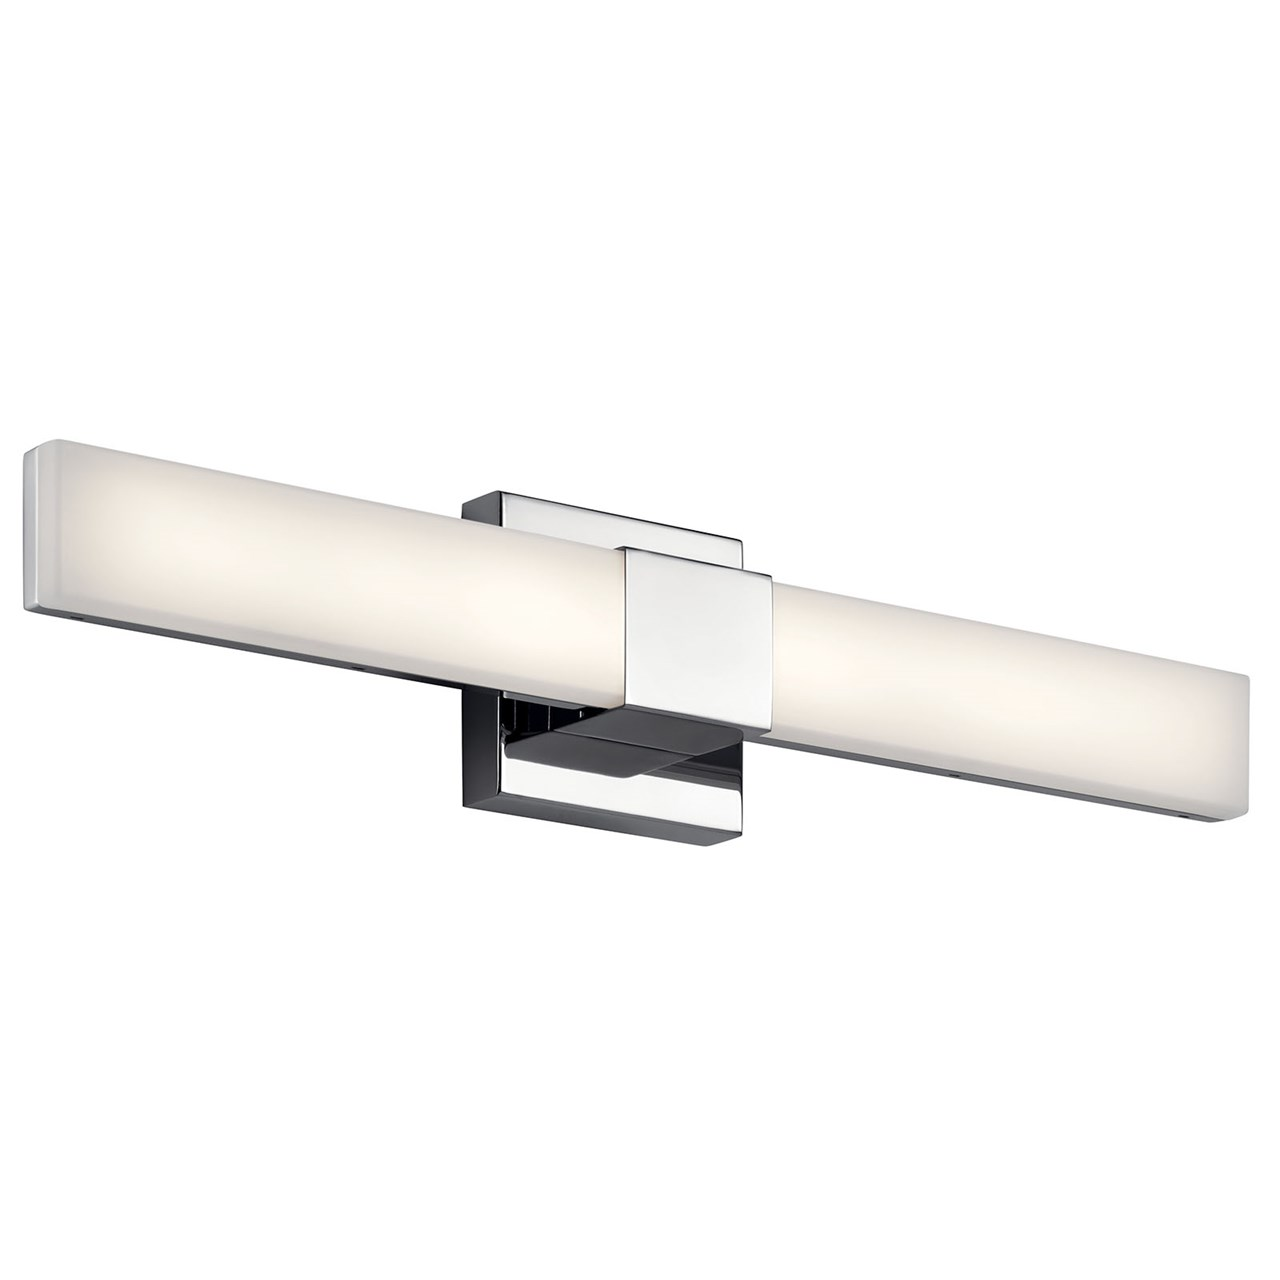 "KIC 83736 LINEAR BATH 24"" LED NEWSTOCK MAR 2019"